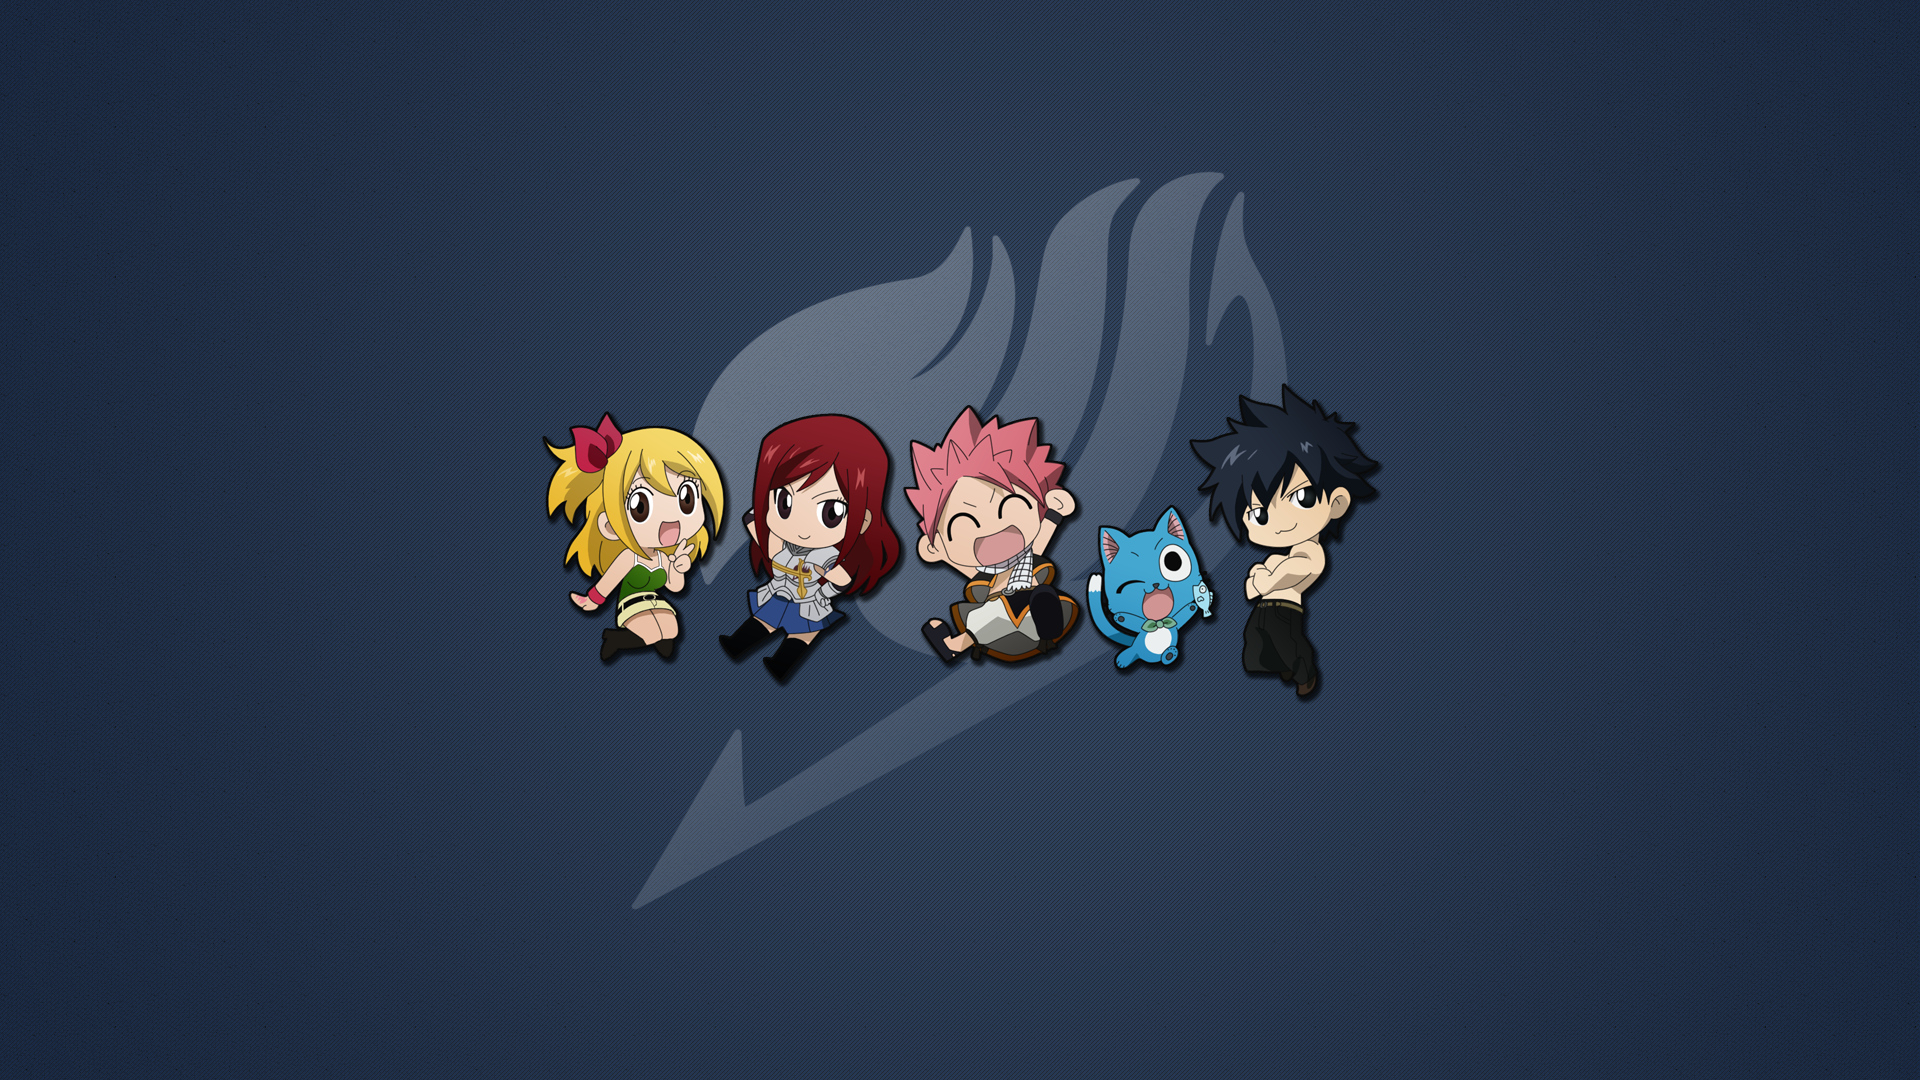 Fairy Tail Full HD Wallpaper and Background Image 1920x1080